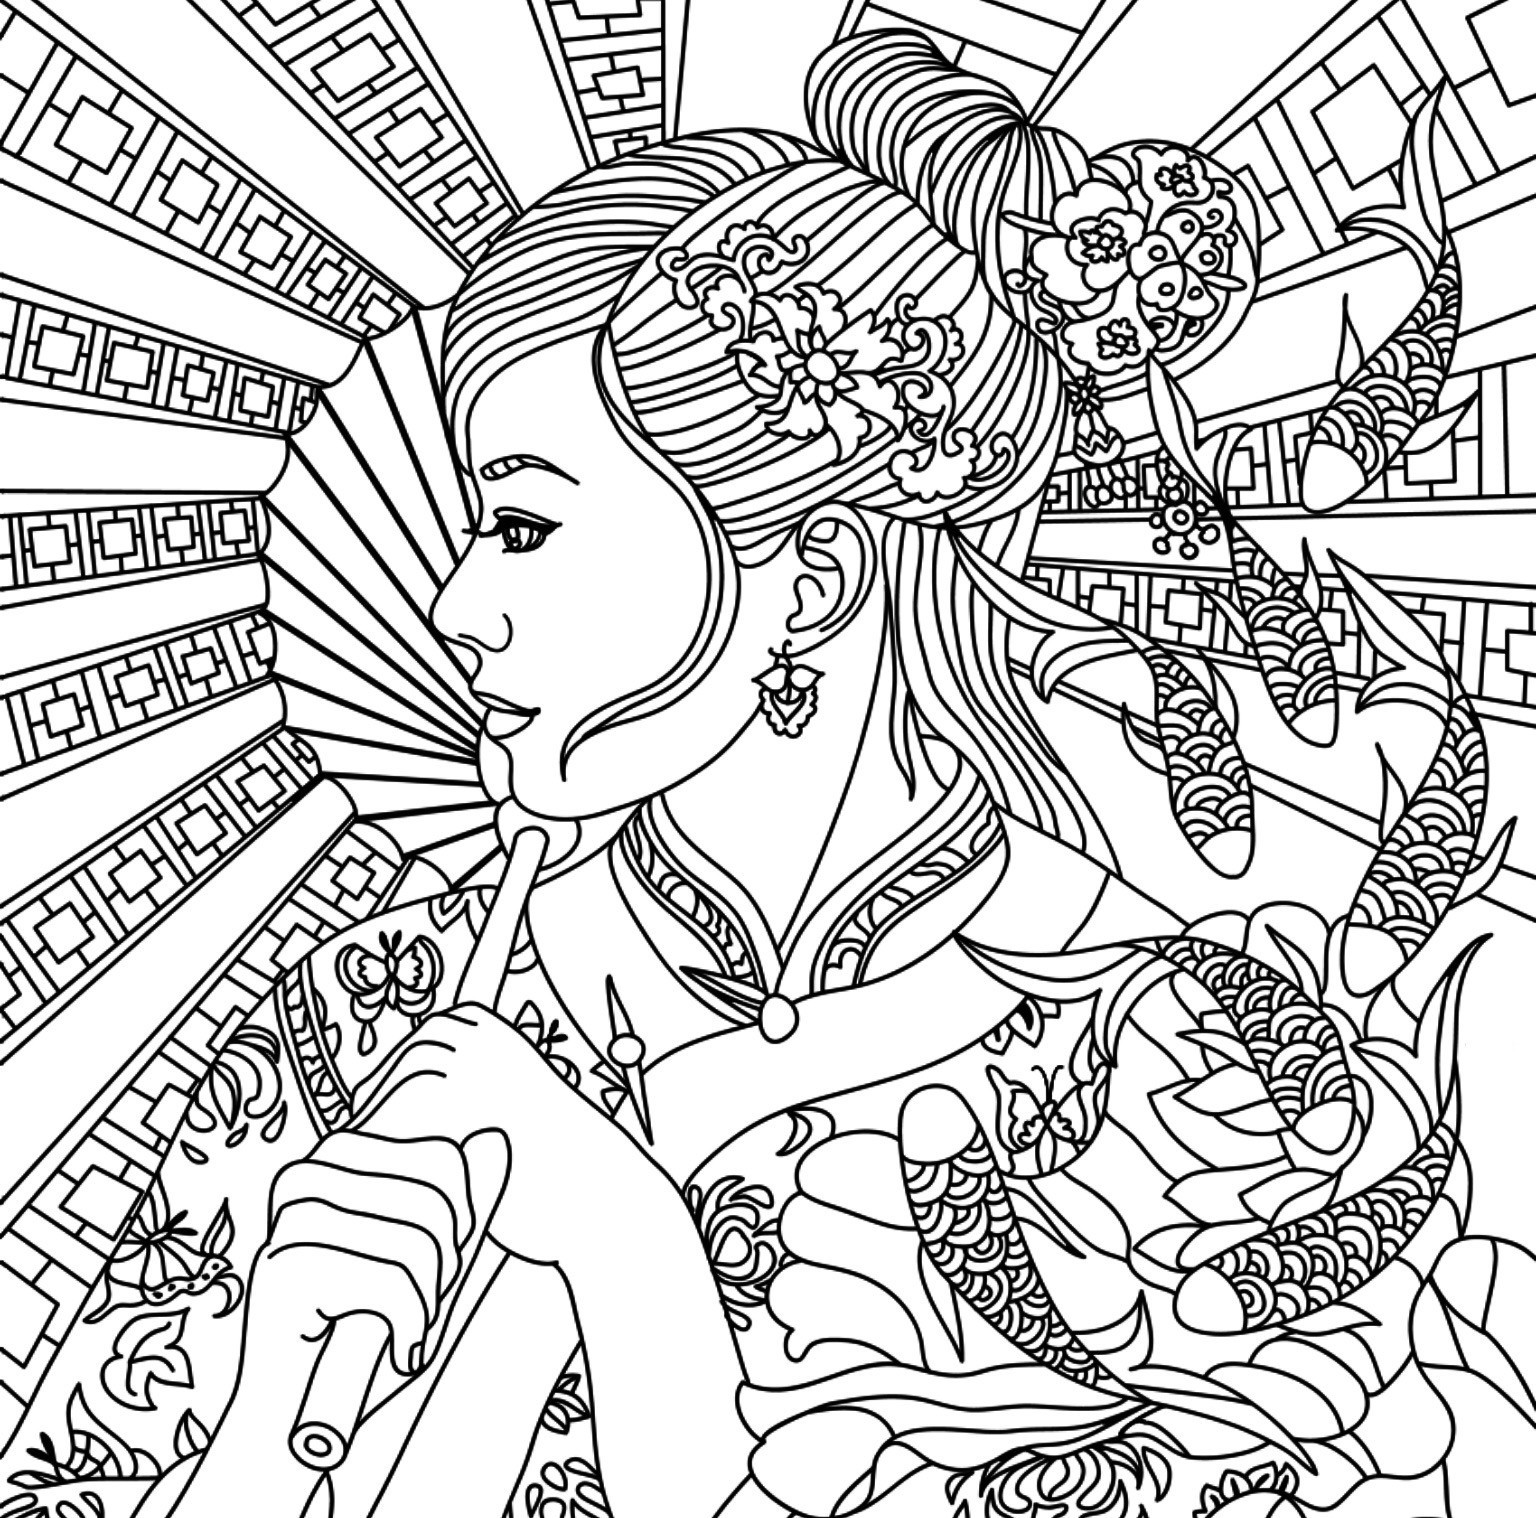 1536x1518 Black Women Coloring Pages Cool Of Mosm